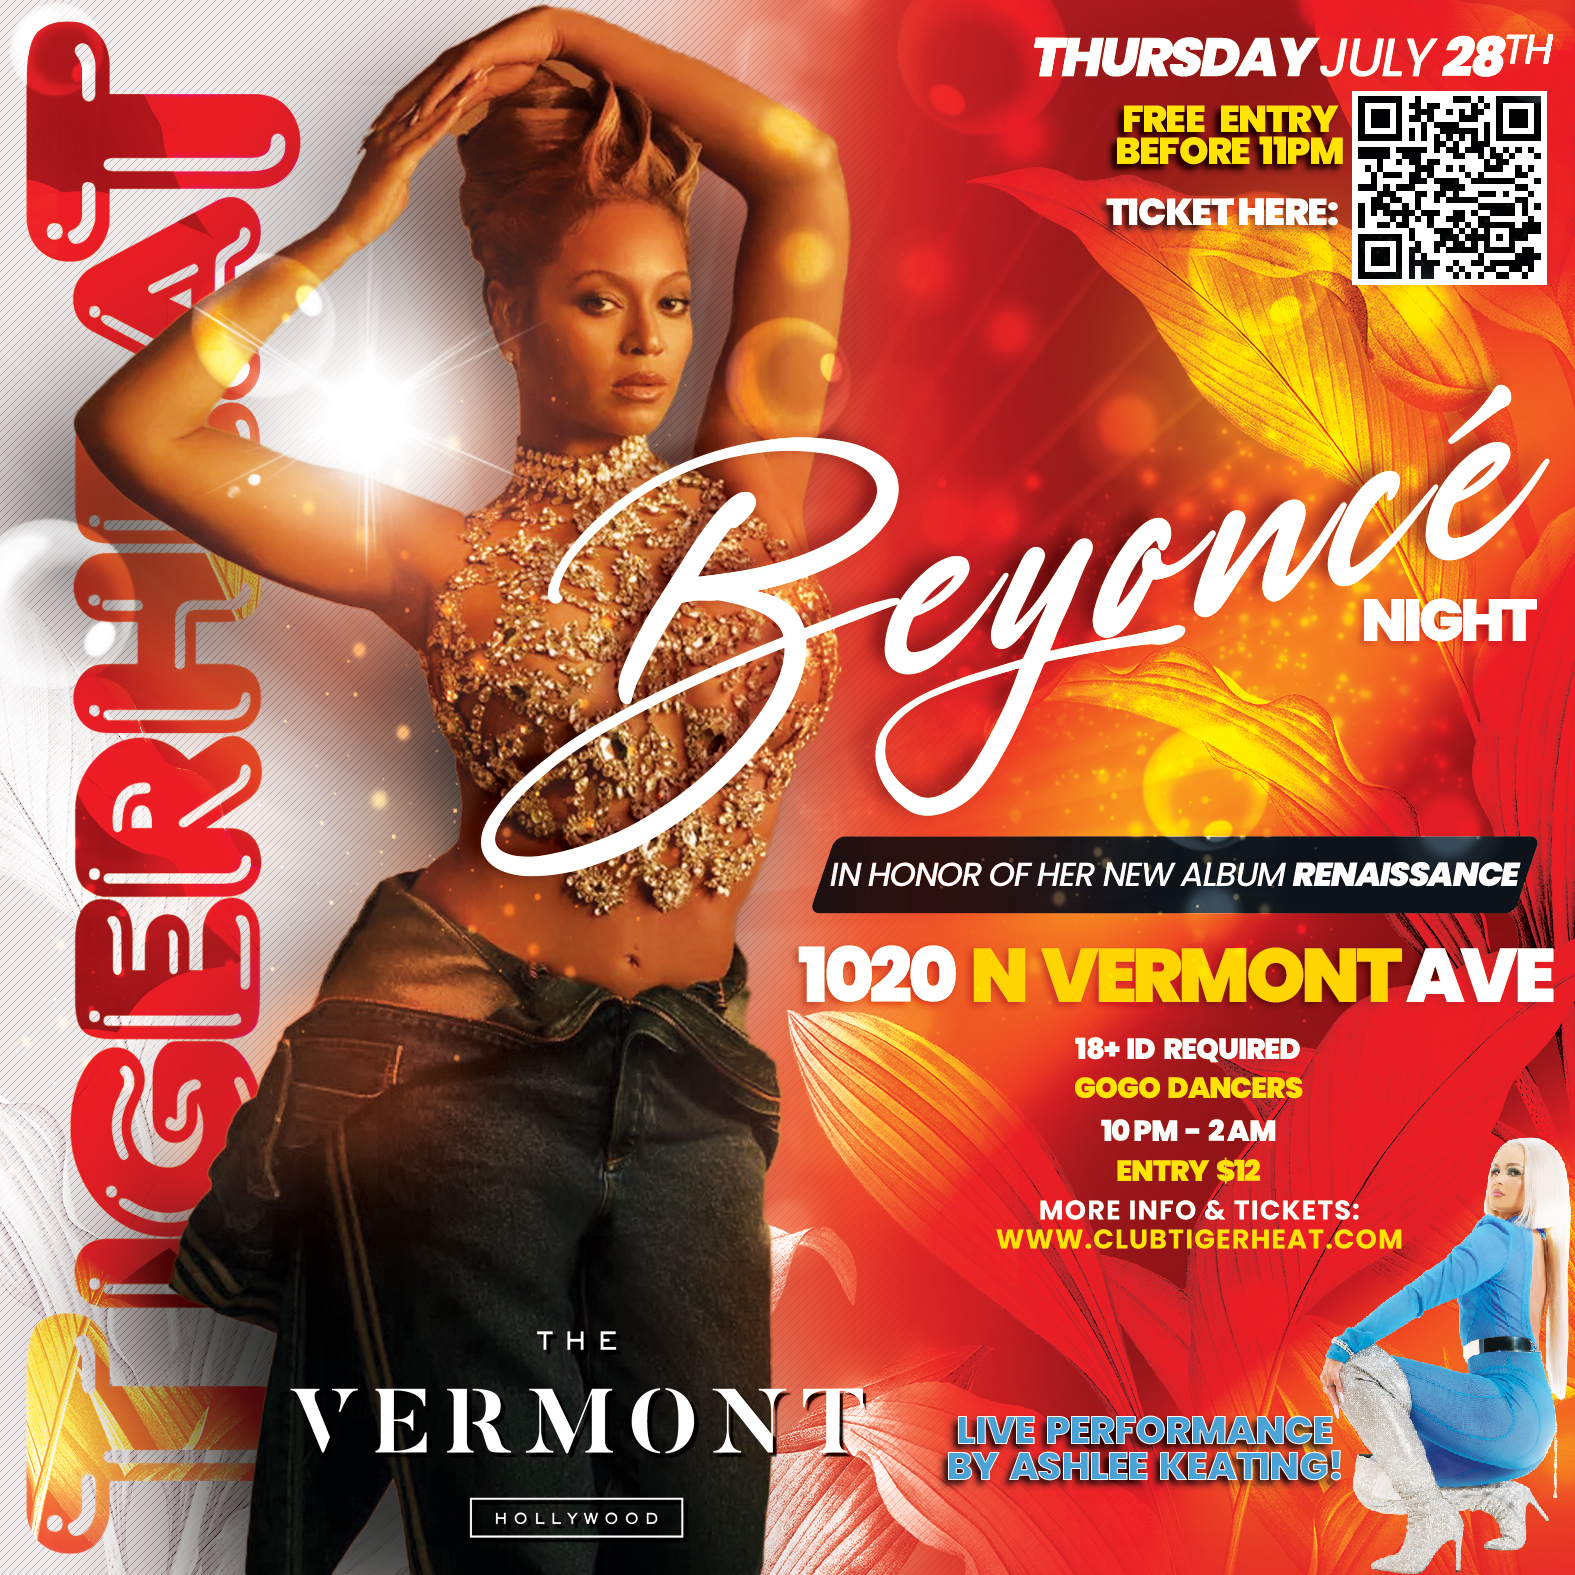 "This week's TigerHeat event: View Flyer >> TigerHeat info""/></a></p> <h2>sex la sat / sex in village</h2> <p><iframe height=481 width=608 src="